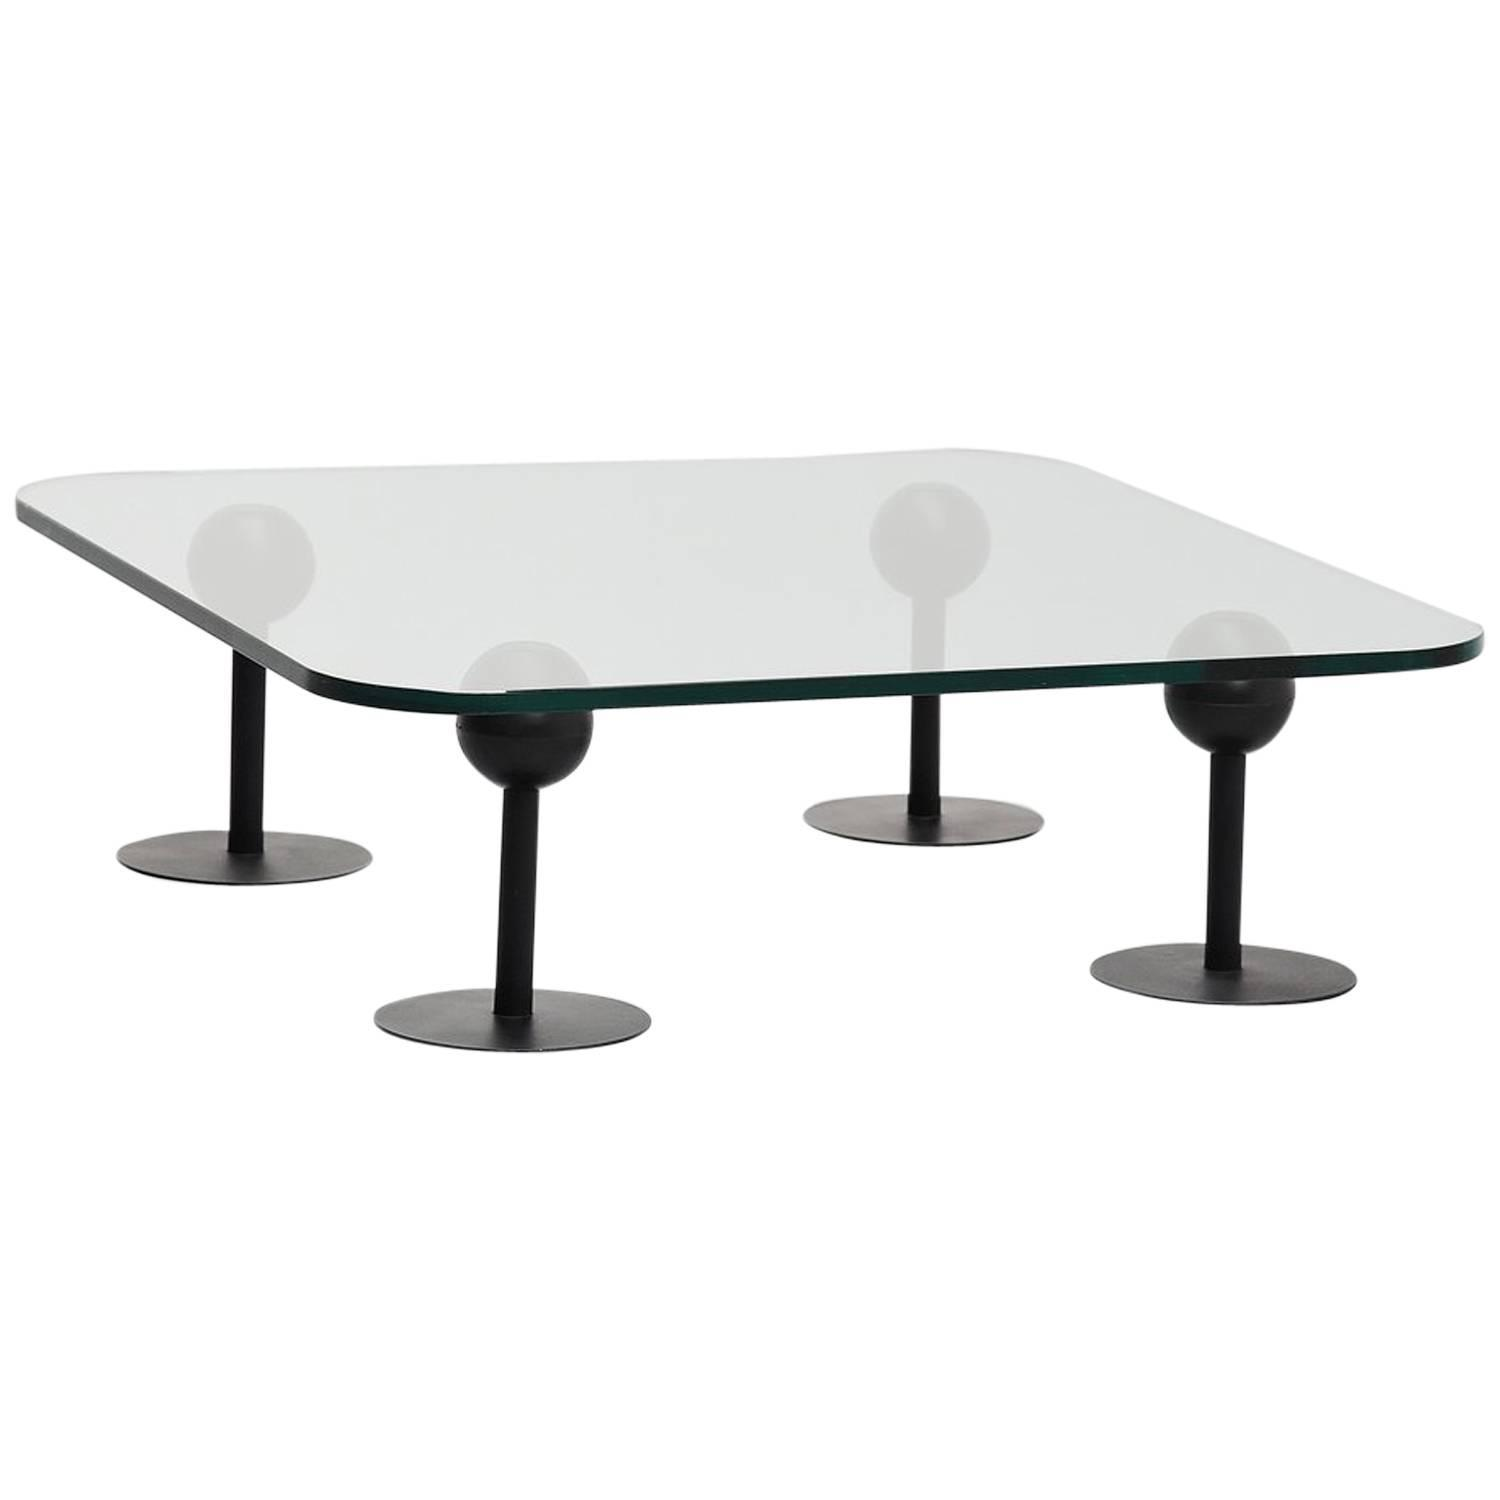 Philippe starck coffee table for les trois suisses france for Philippe starck glass table